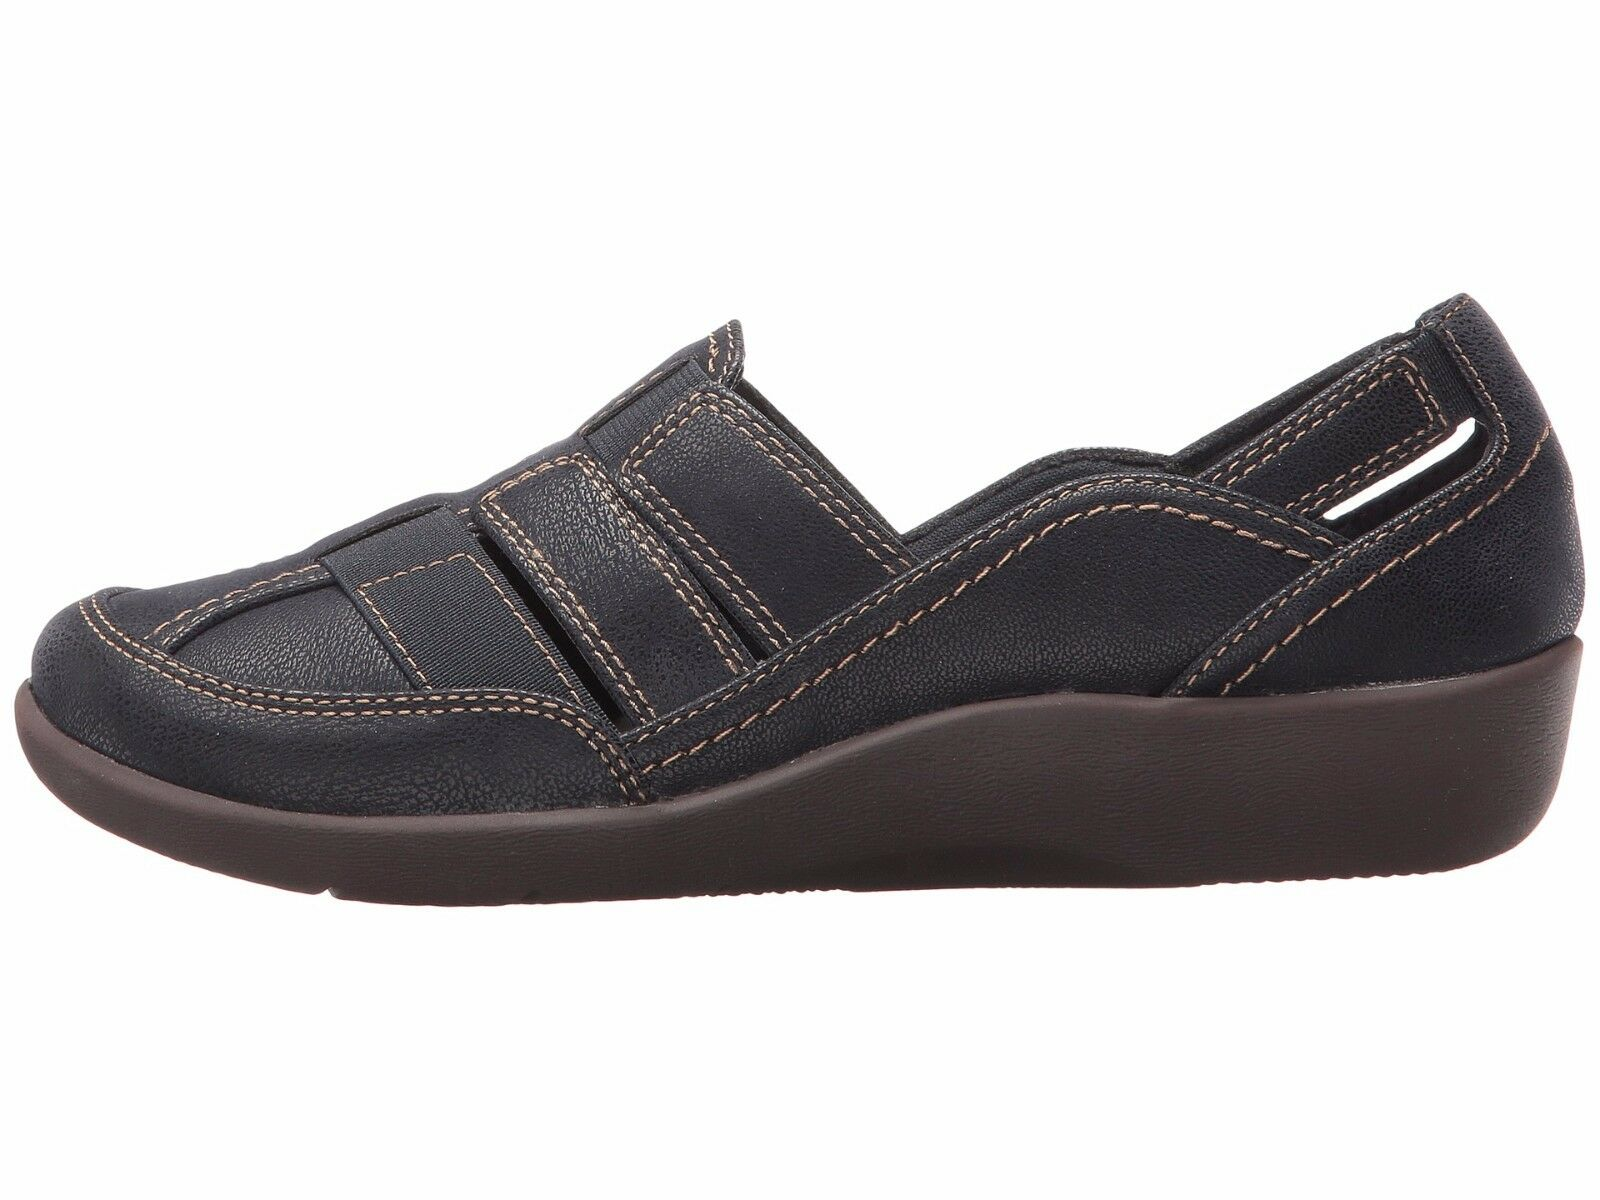 Women's shoes Clarks Clarks Clarks Sillian Stork Casual Cushioned Slip Ons 25893 Navy New 87008f